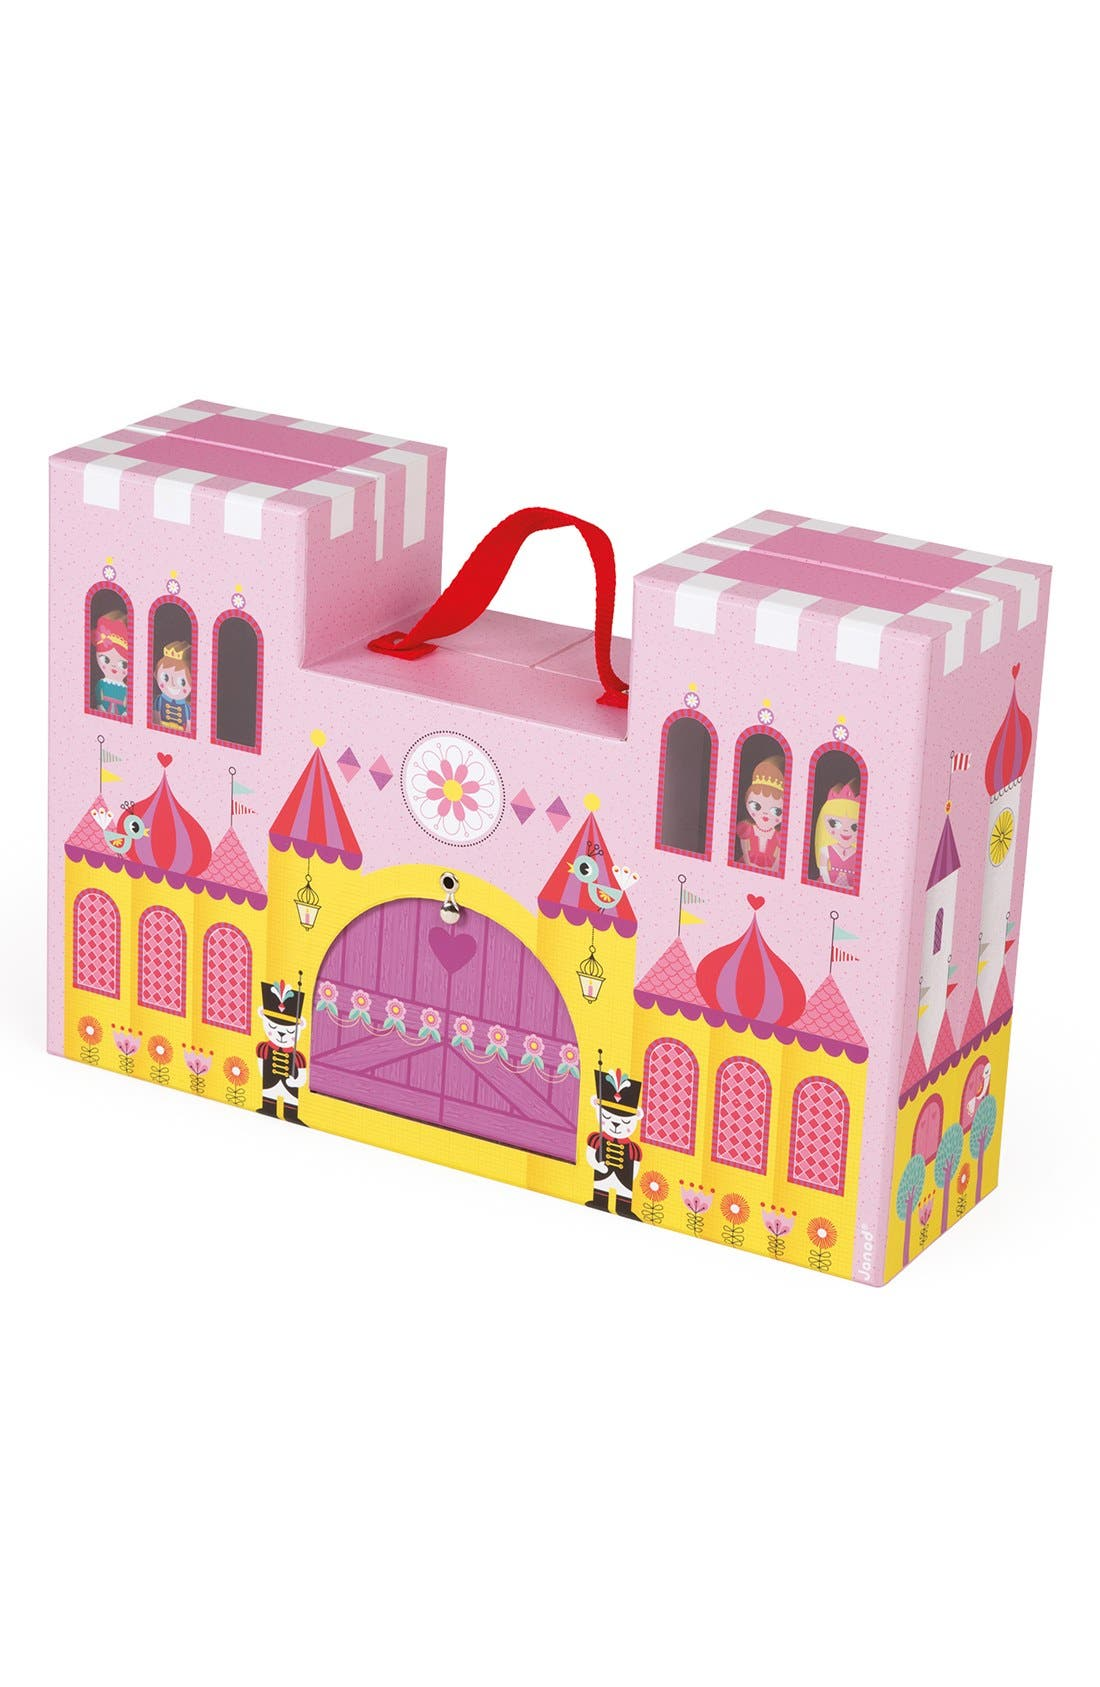 'Princess Palace' Play Set,                             Main thumbnail 1, color,                             960